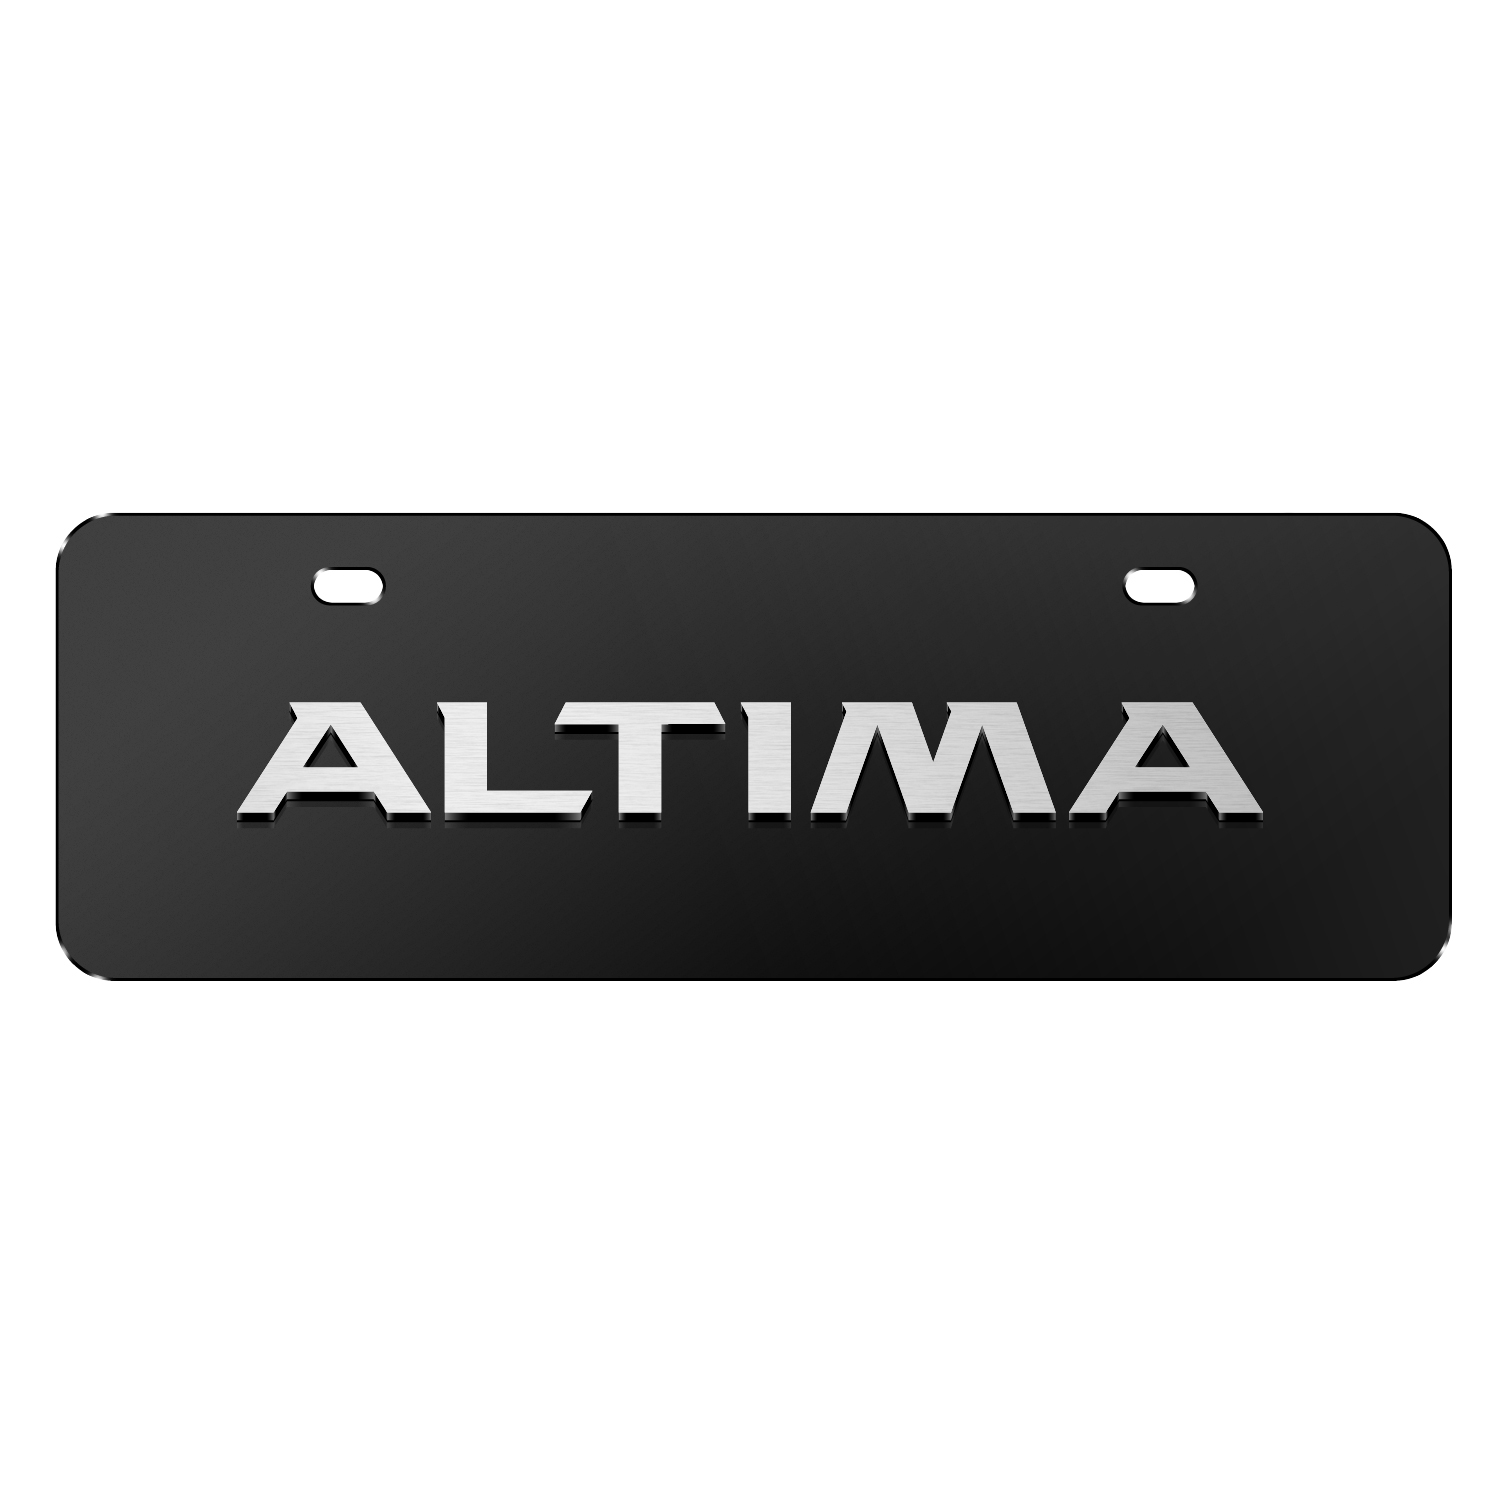 """Nissan Altima 3D Black 12""""x4"""" Half-Size Stainless Steel License Plate"""